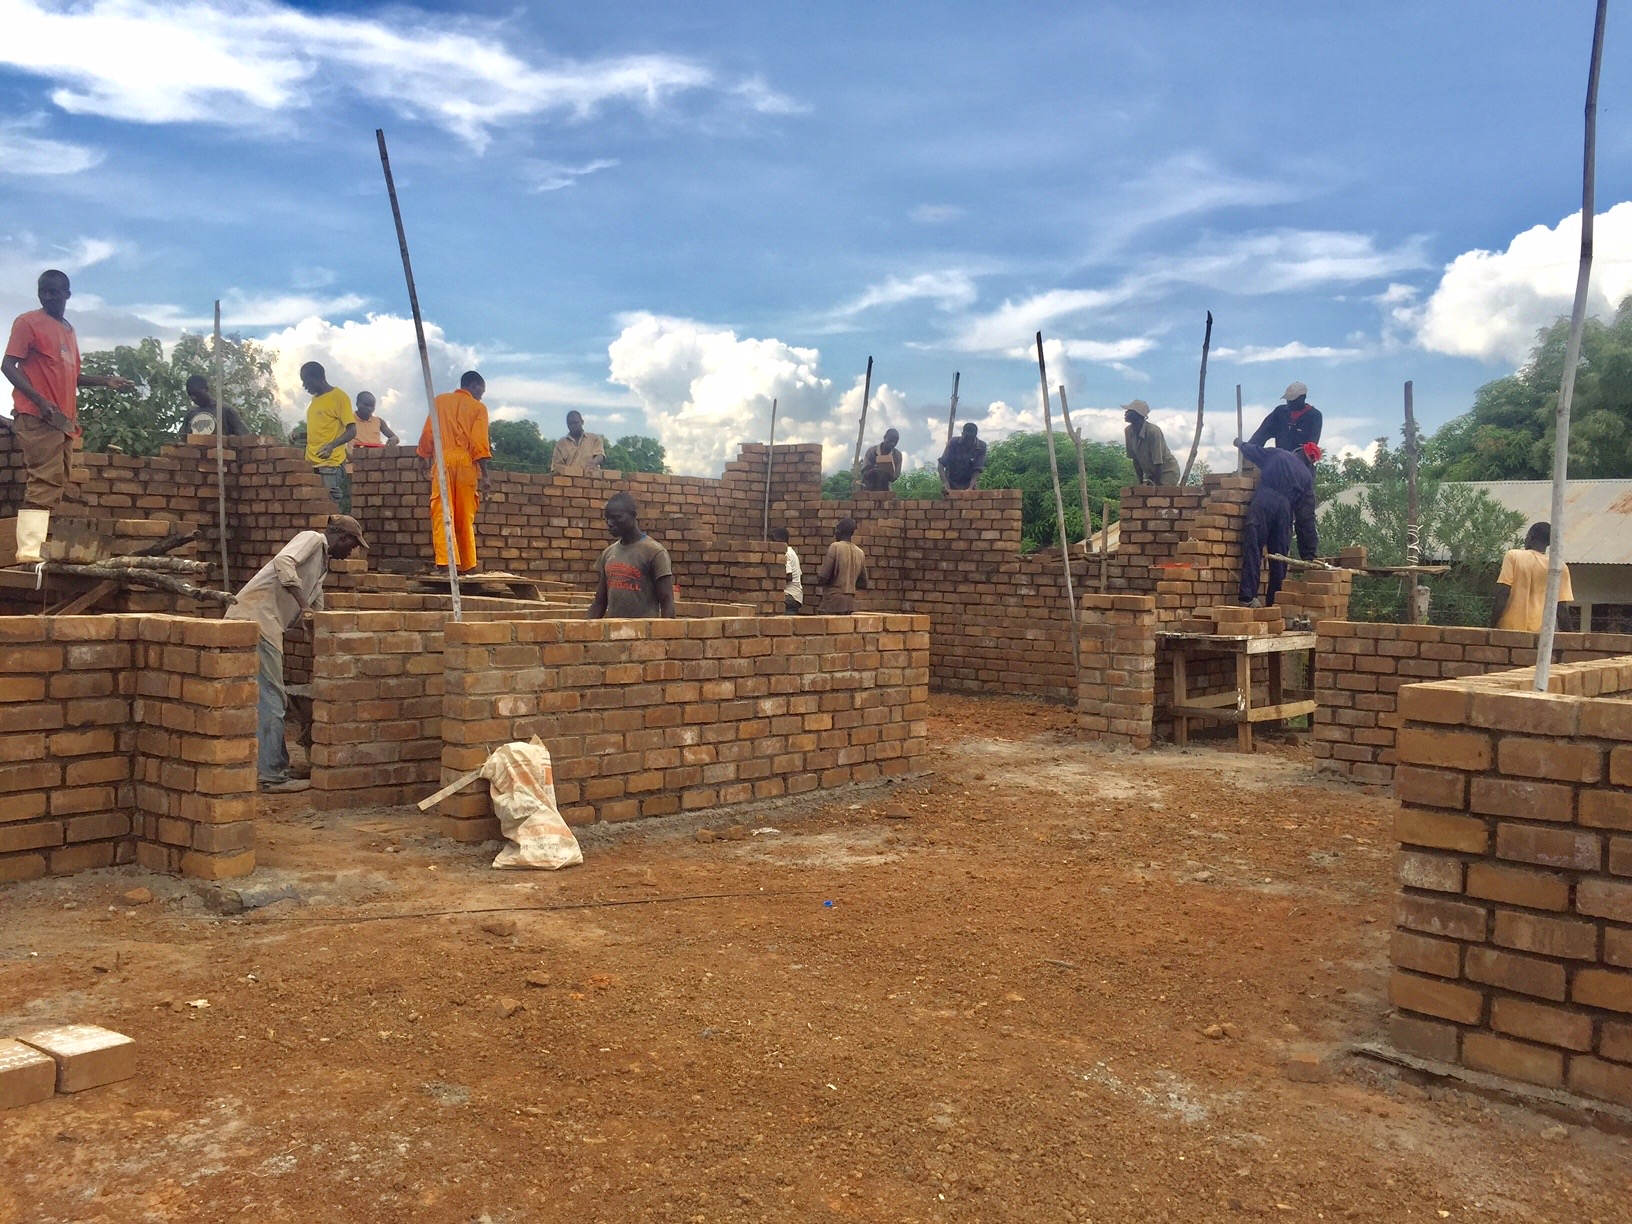 Over 100 employed now building with bricks made from training